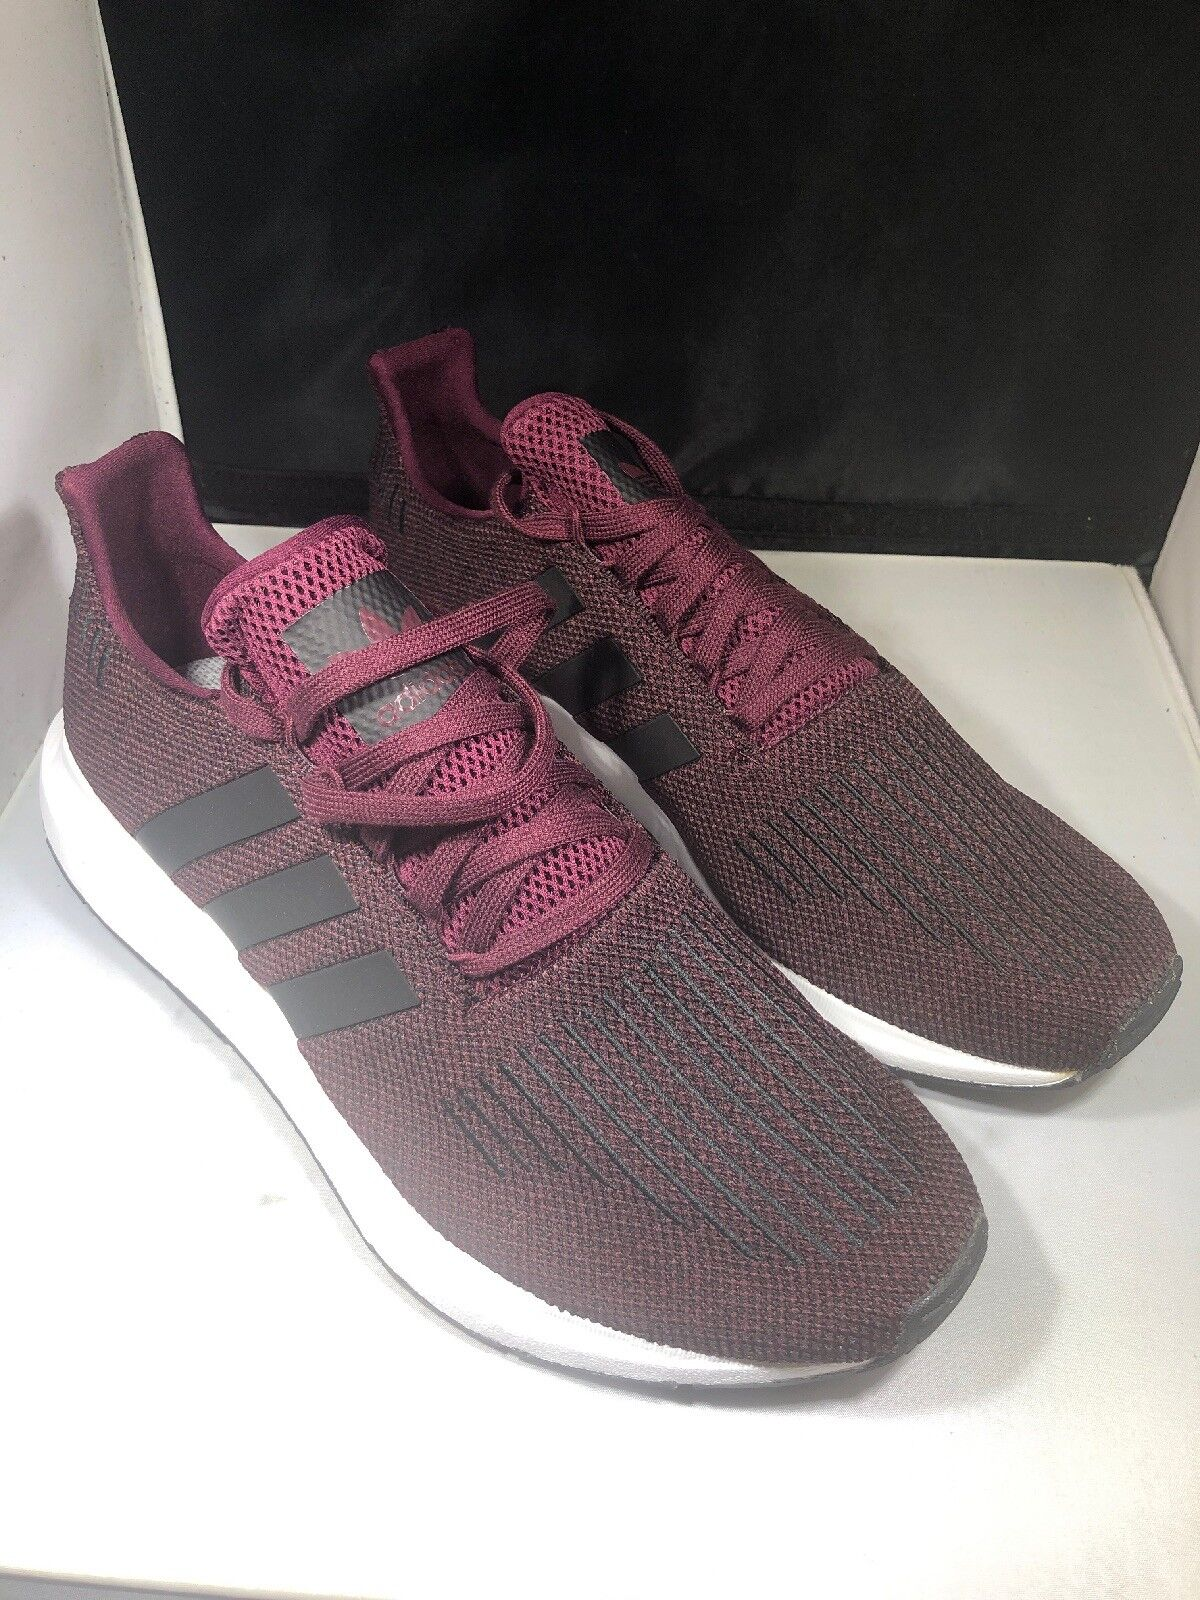 4ebeed42ab924 ADIDAS swift Maroon Tennis shoes Size 12 cq2118 (j50) Run Mens ...